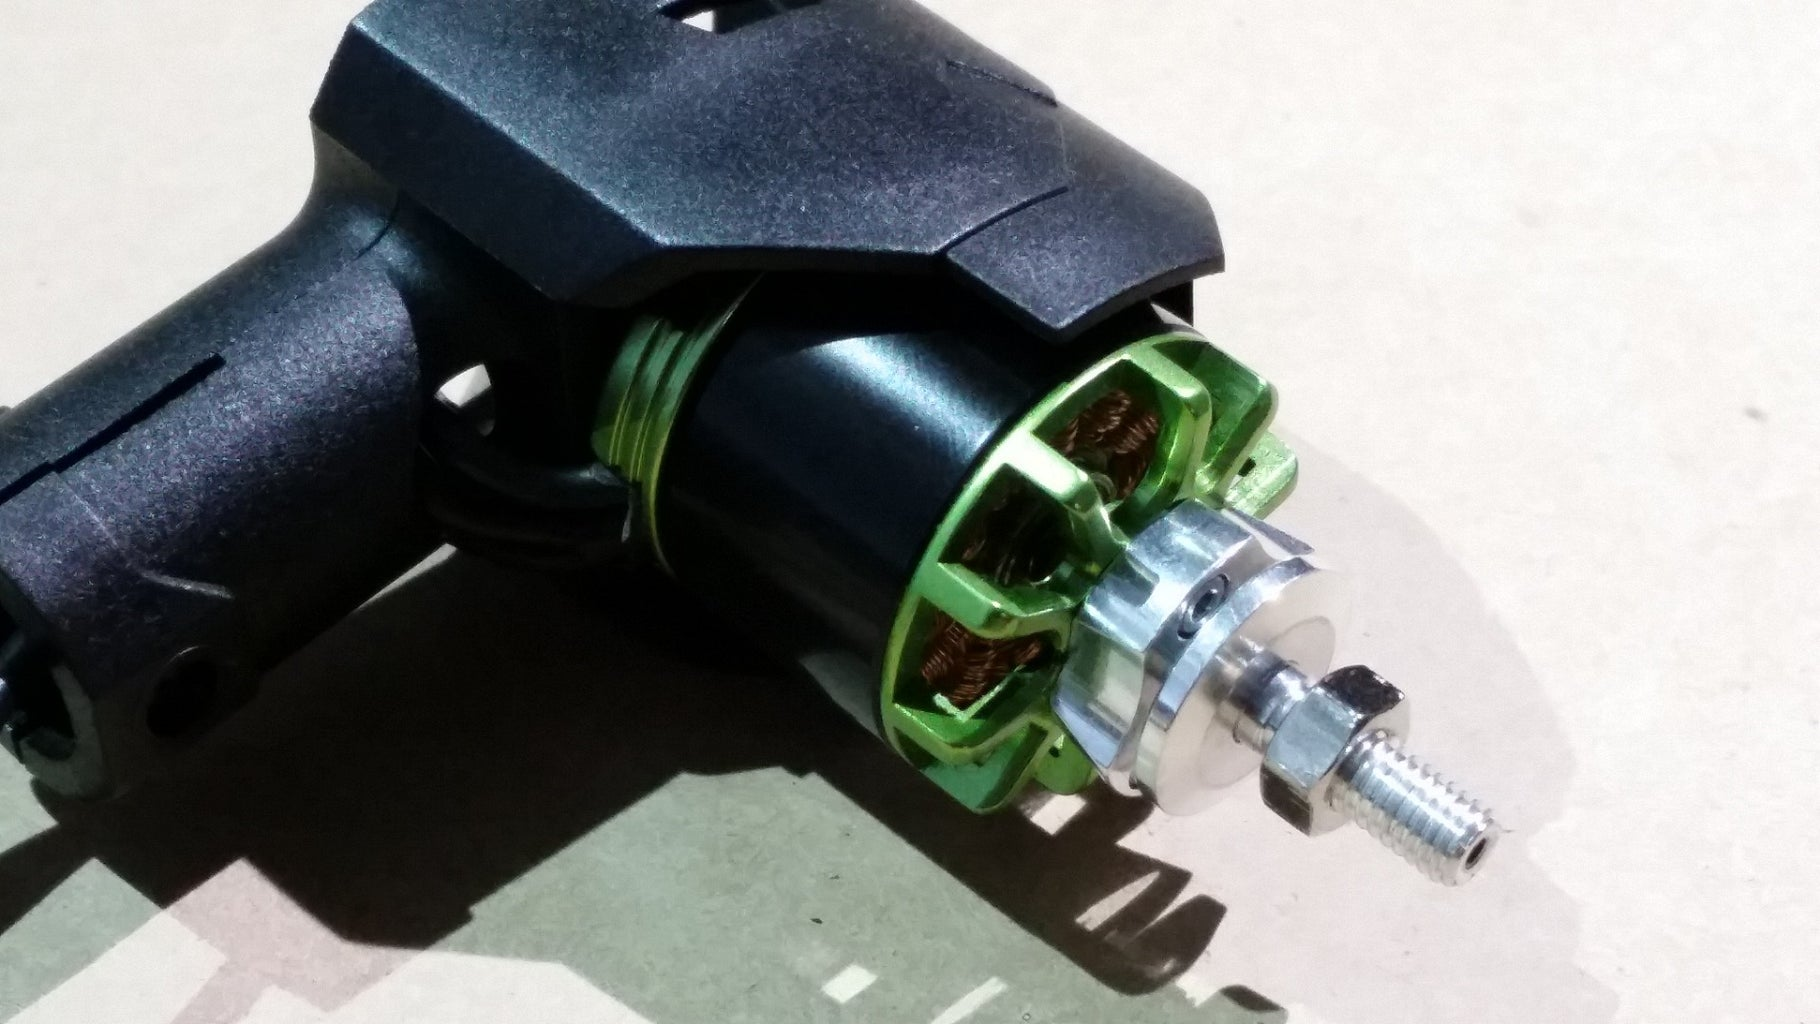 Attach the Motors to the Motor Mounts